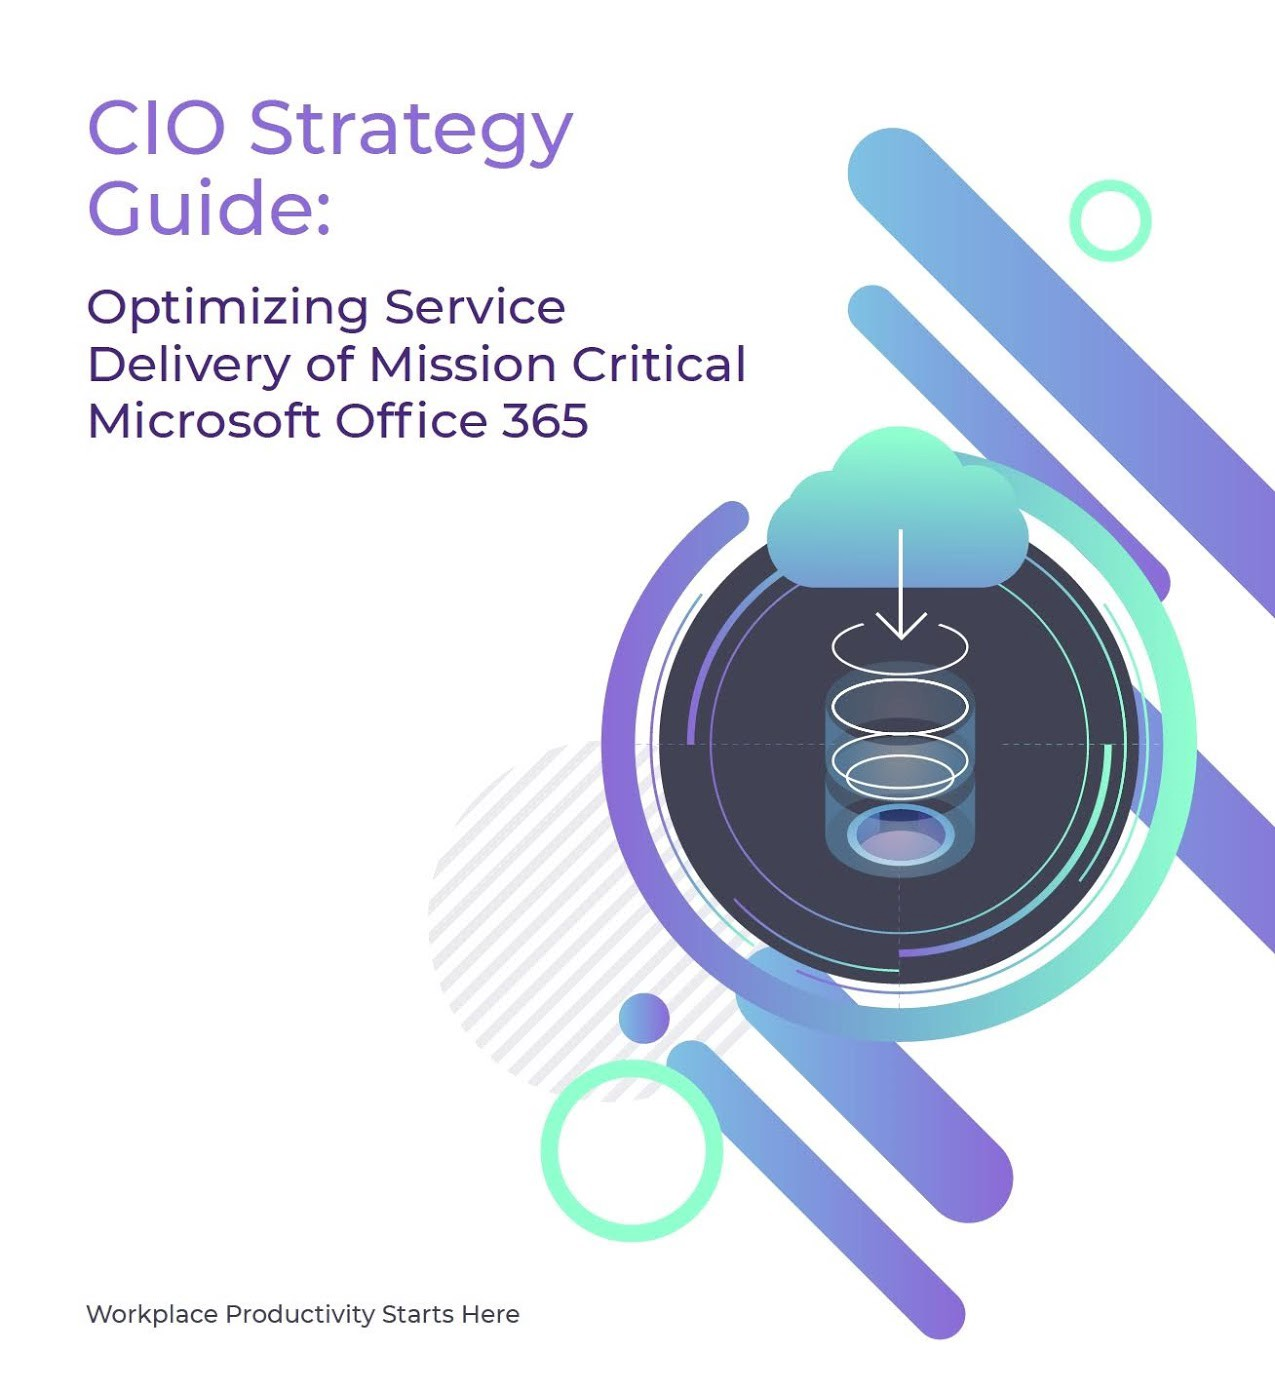 How to Optimize Service Delivery of Mission-Critical Office 365